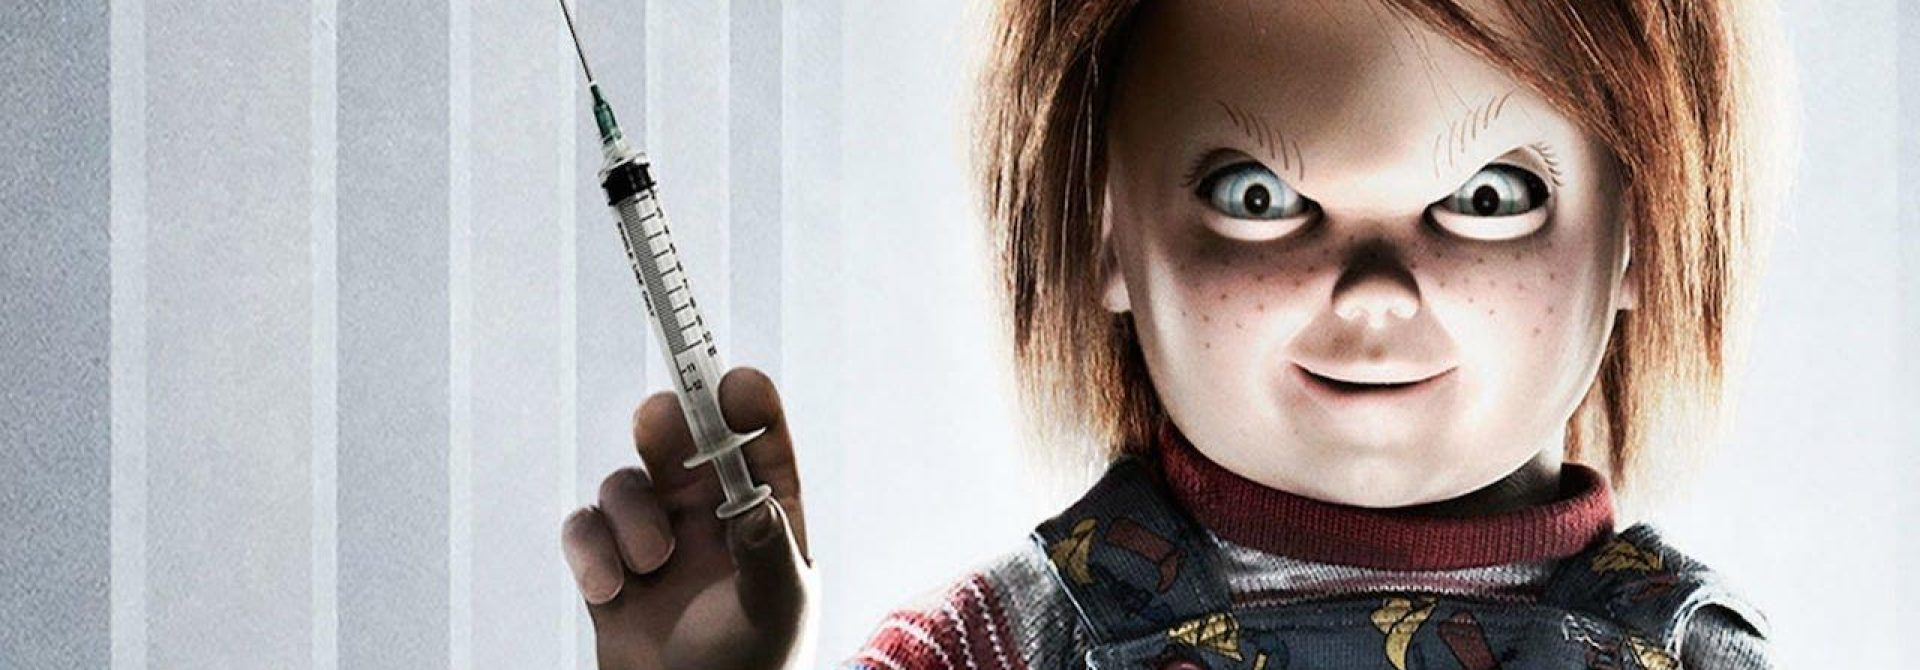 SyFy Officially Greenlights Chucky Series